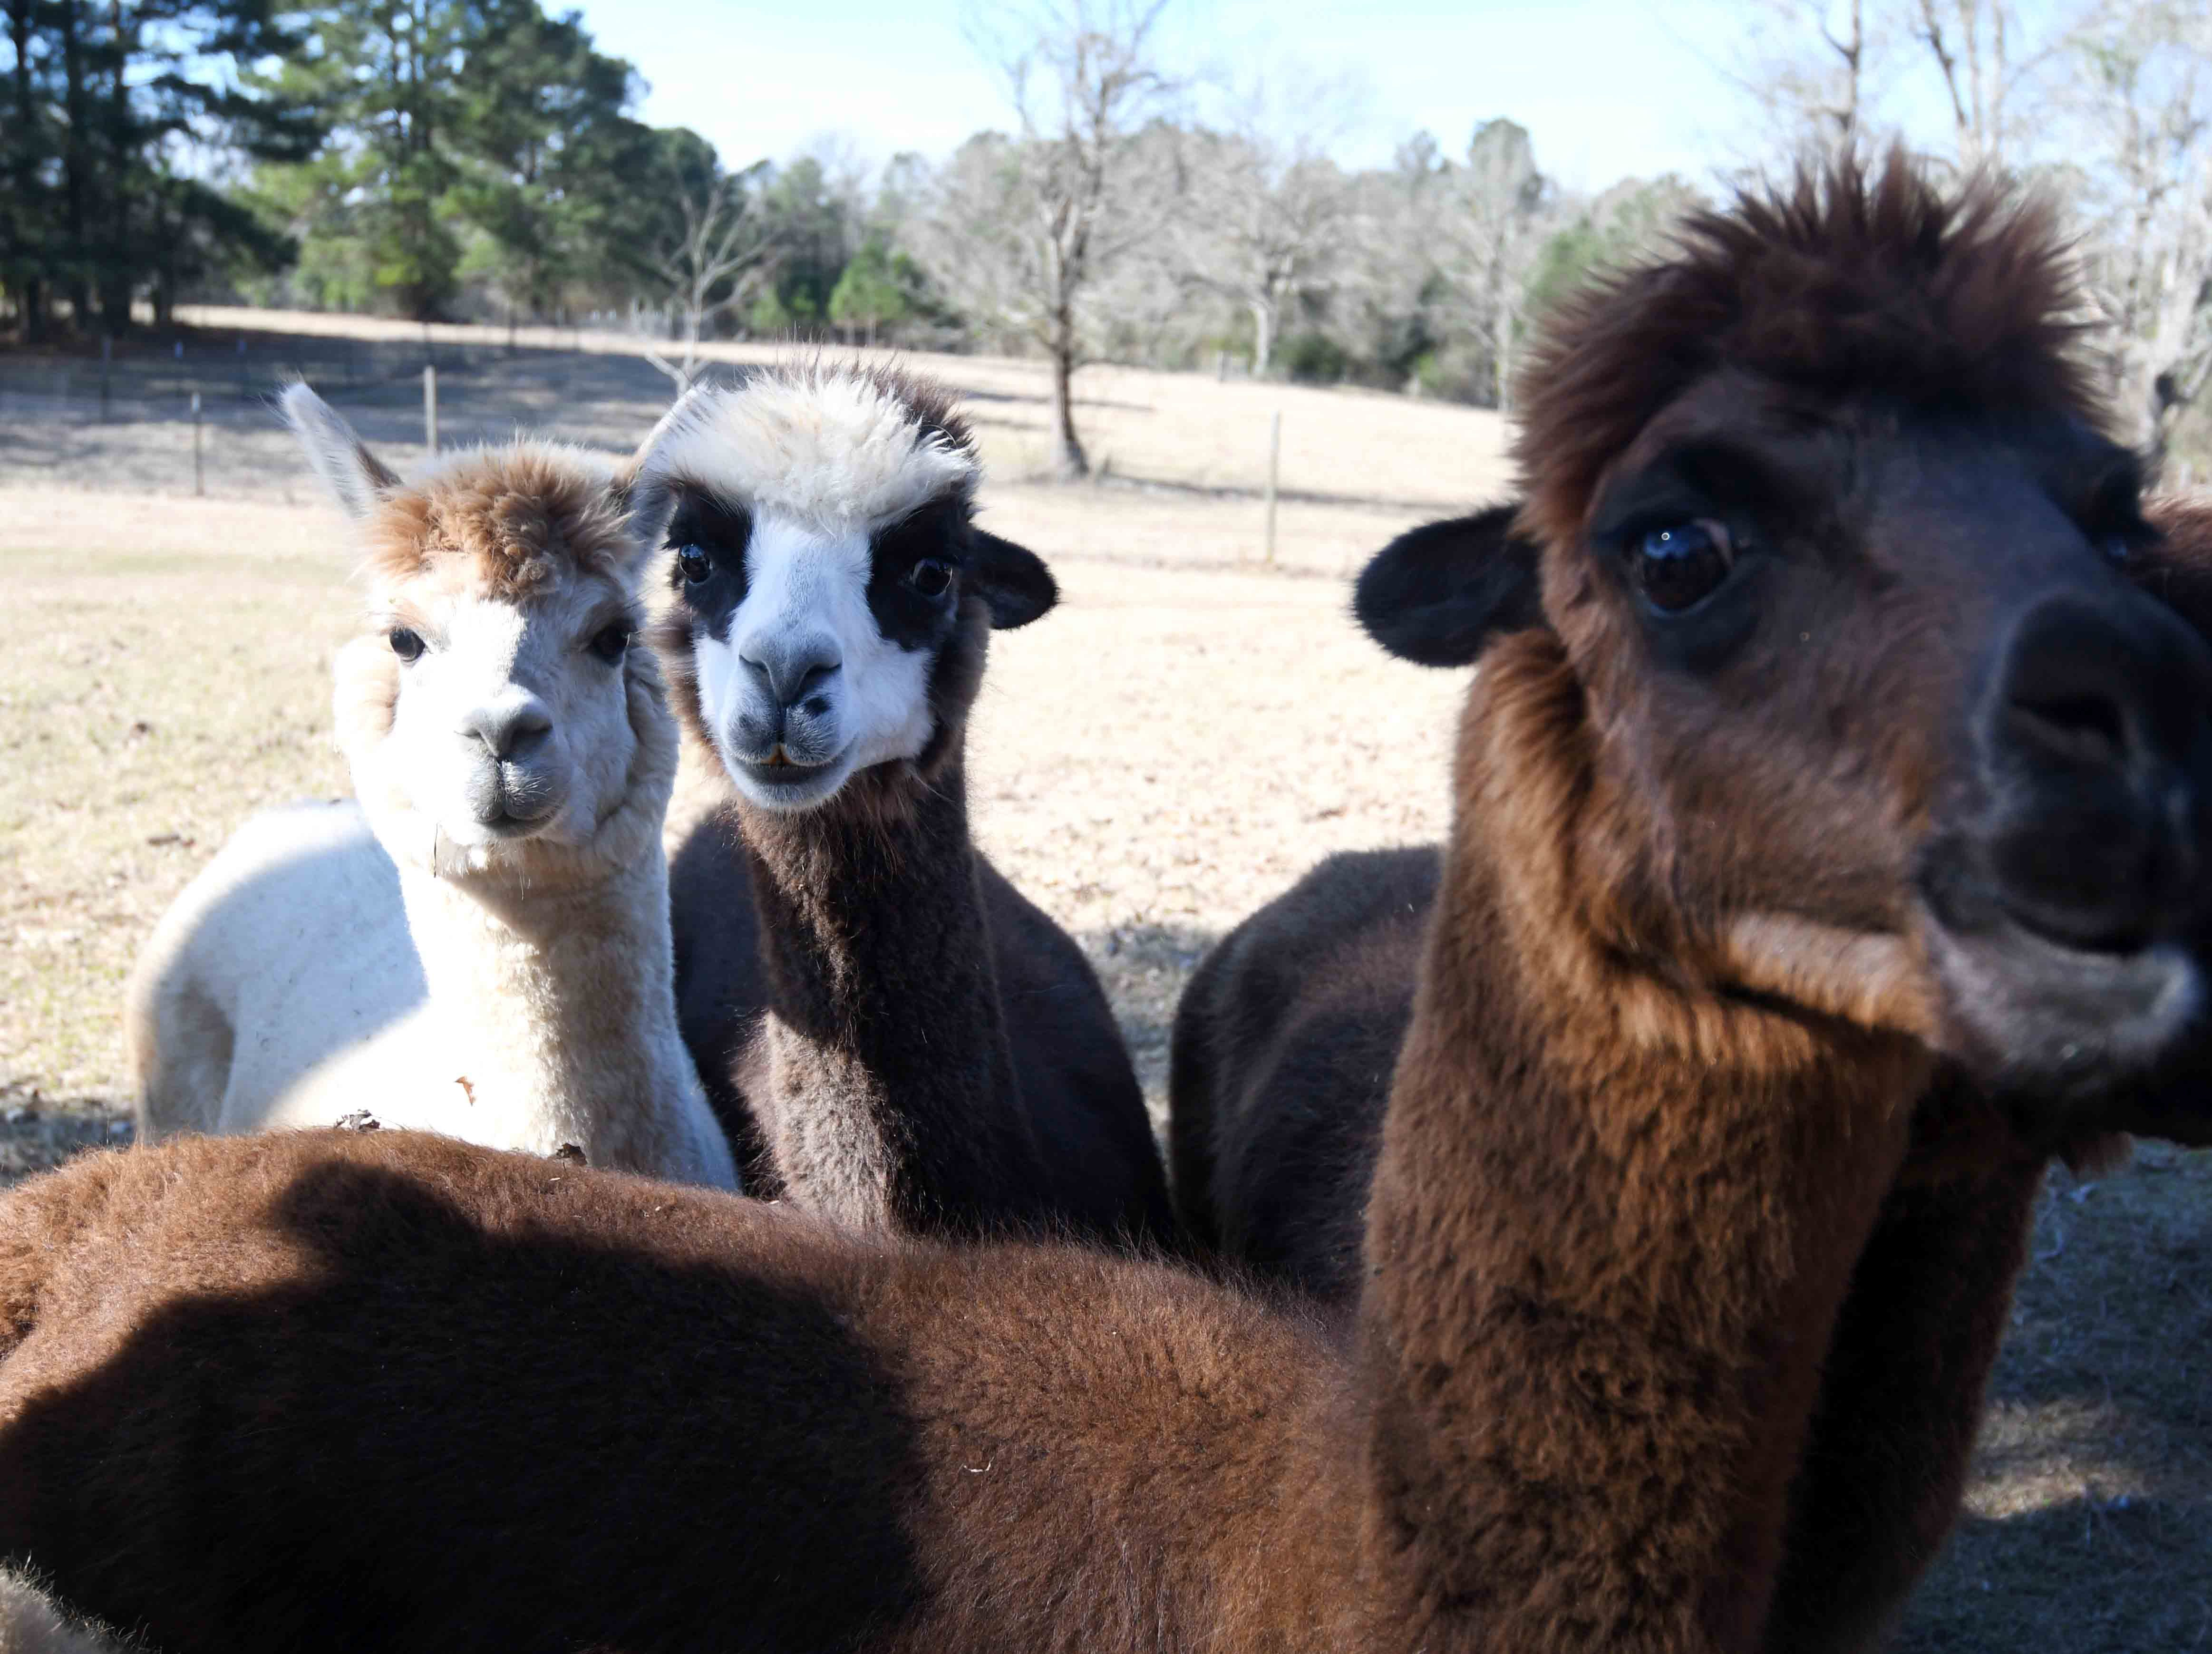 A Stroka-Gene-Us Alpaca Farm in Stringer offers tours to groups and families who want to learn more about the South American animal.